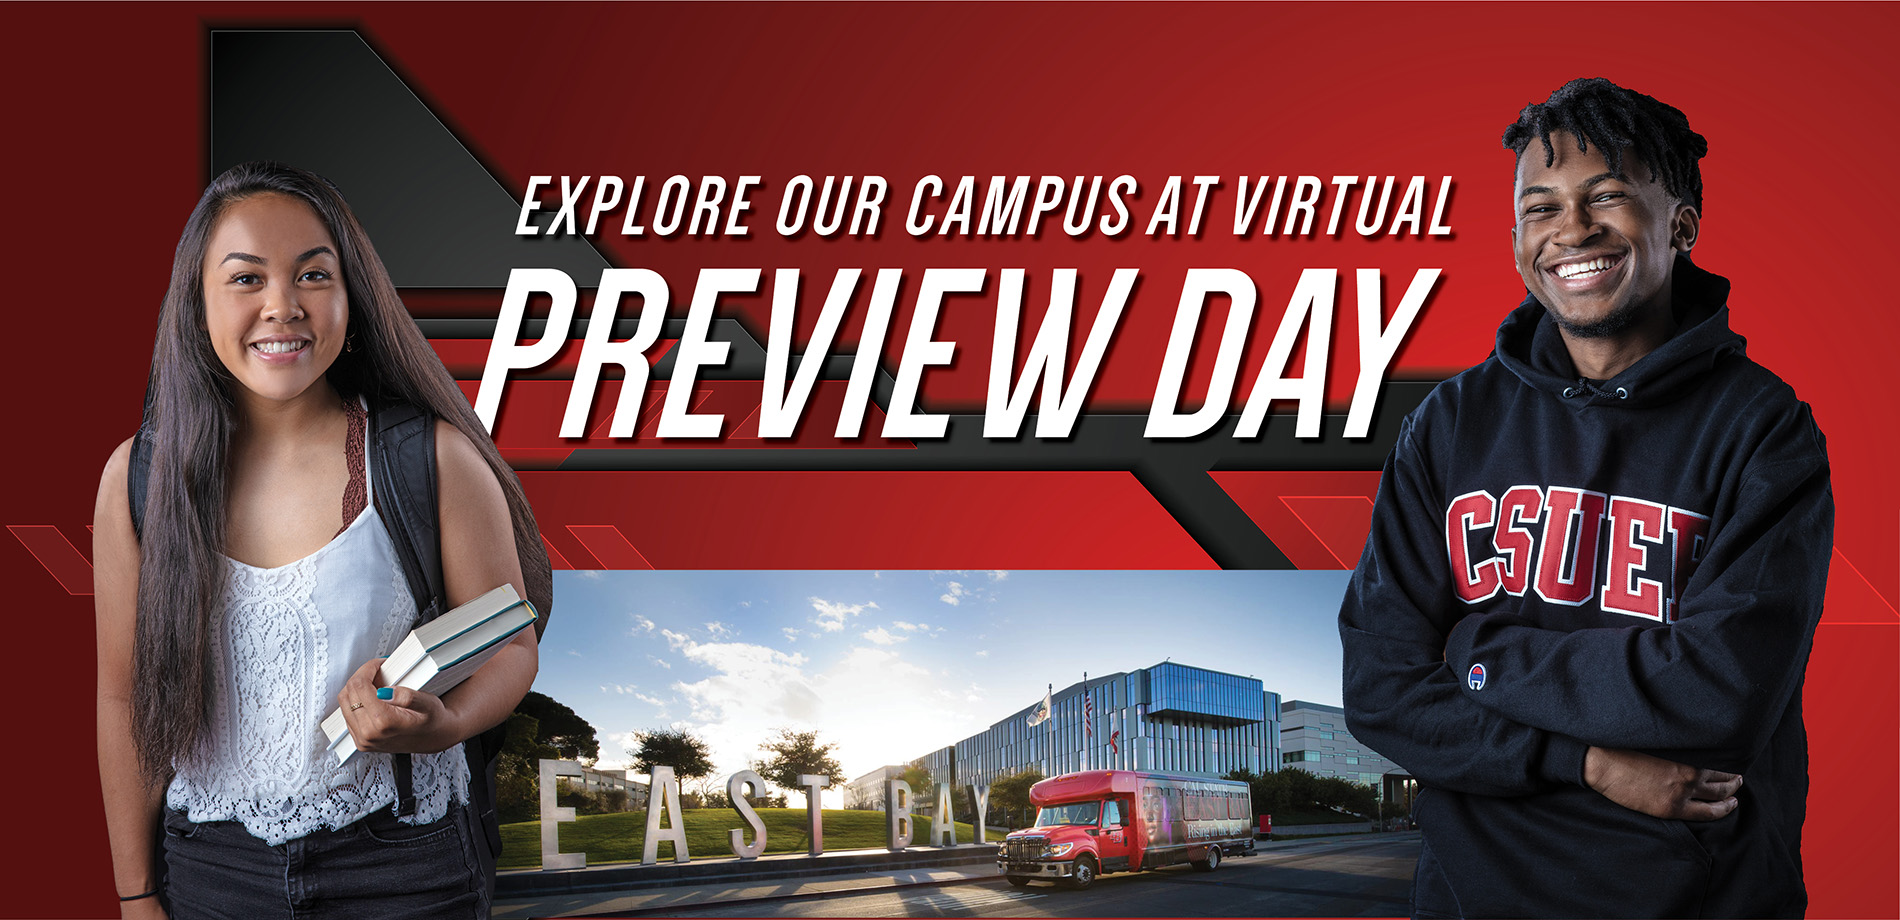 Preview Day Banner with students